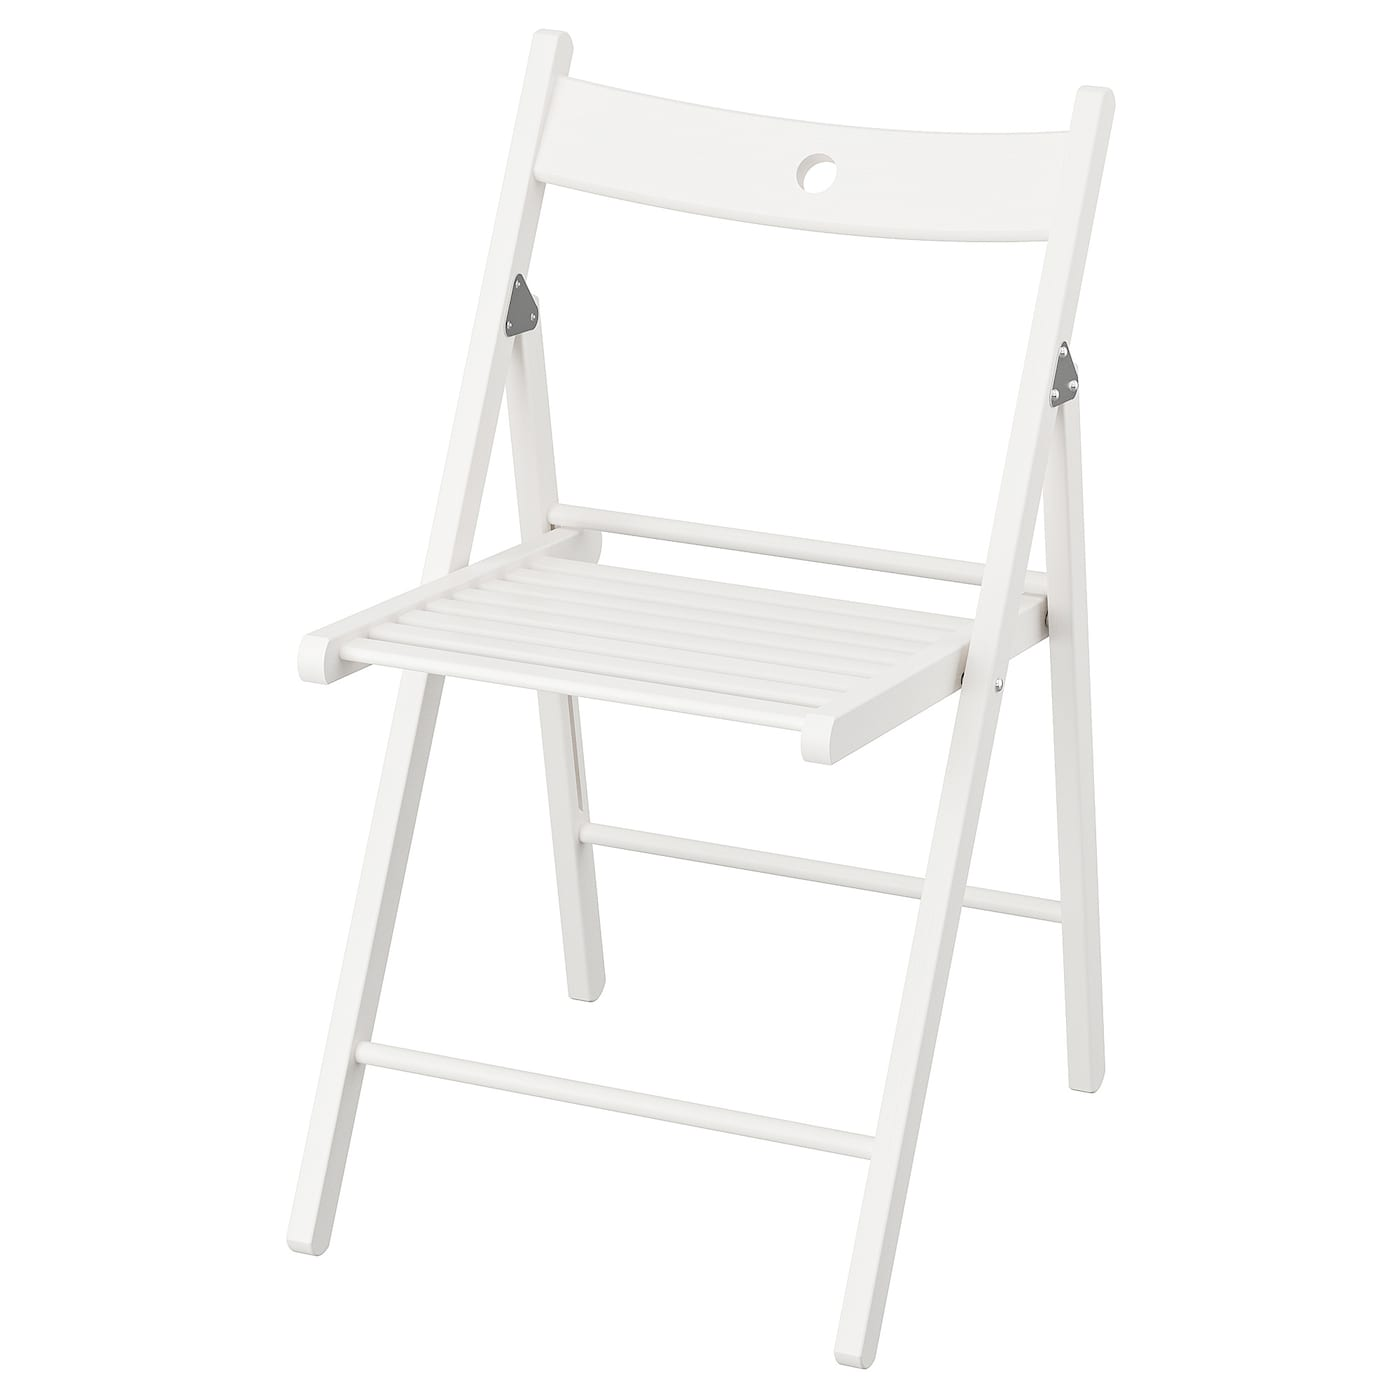 TERJE Folding chair white